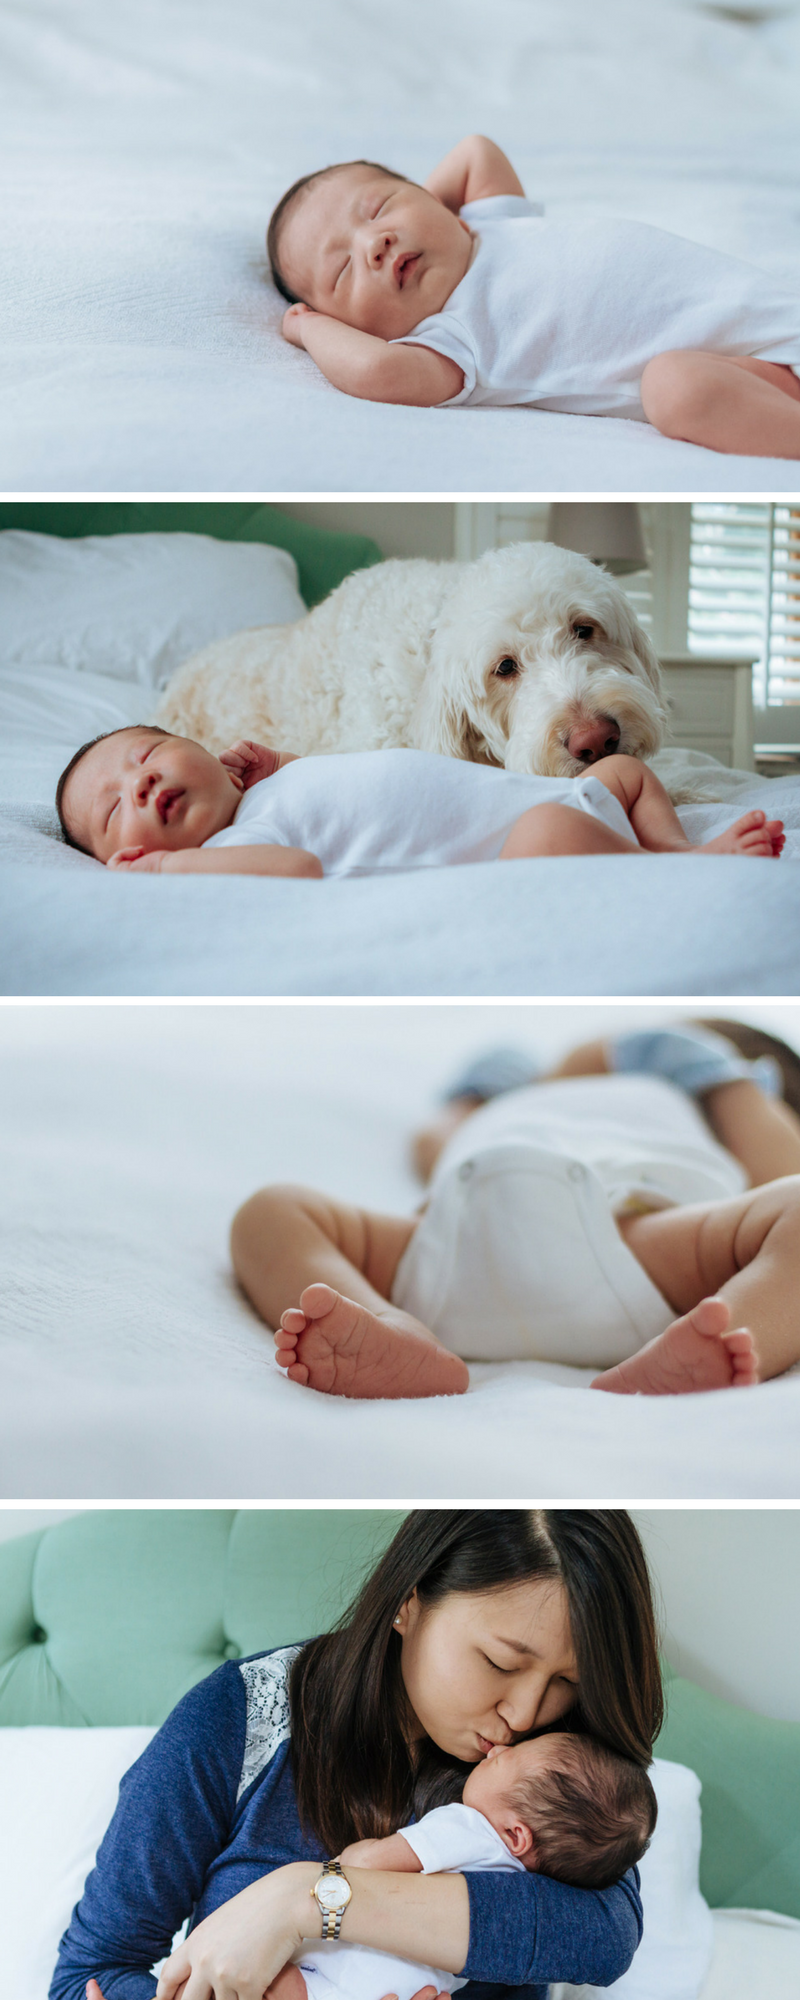 newborn lifestyle photography in fairfield, ct - laura barr photography